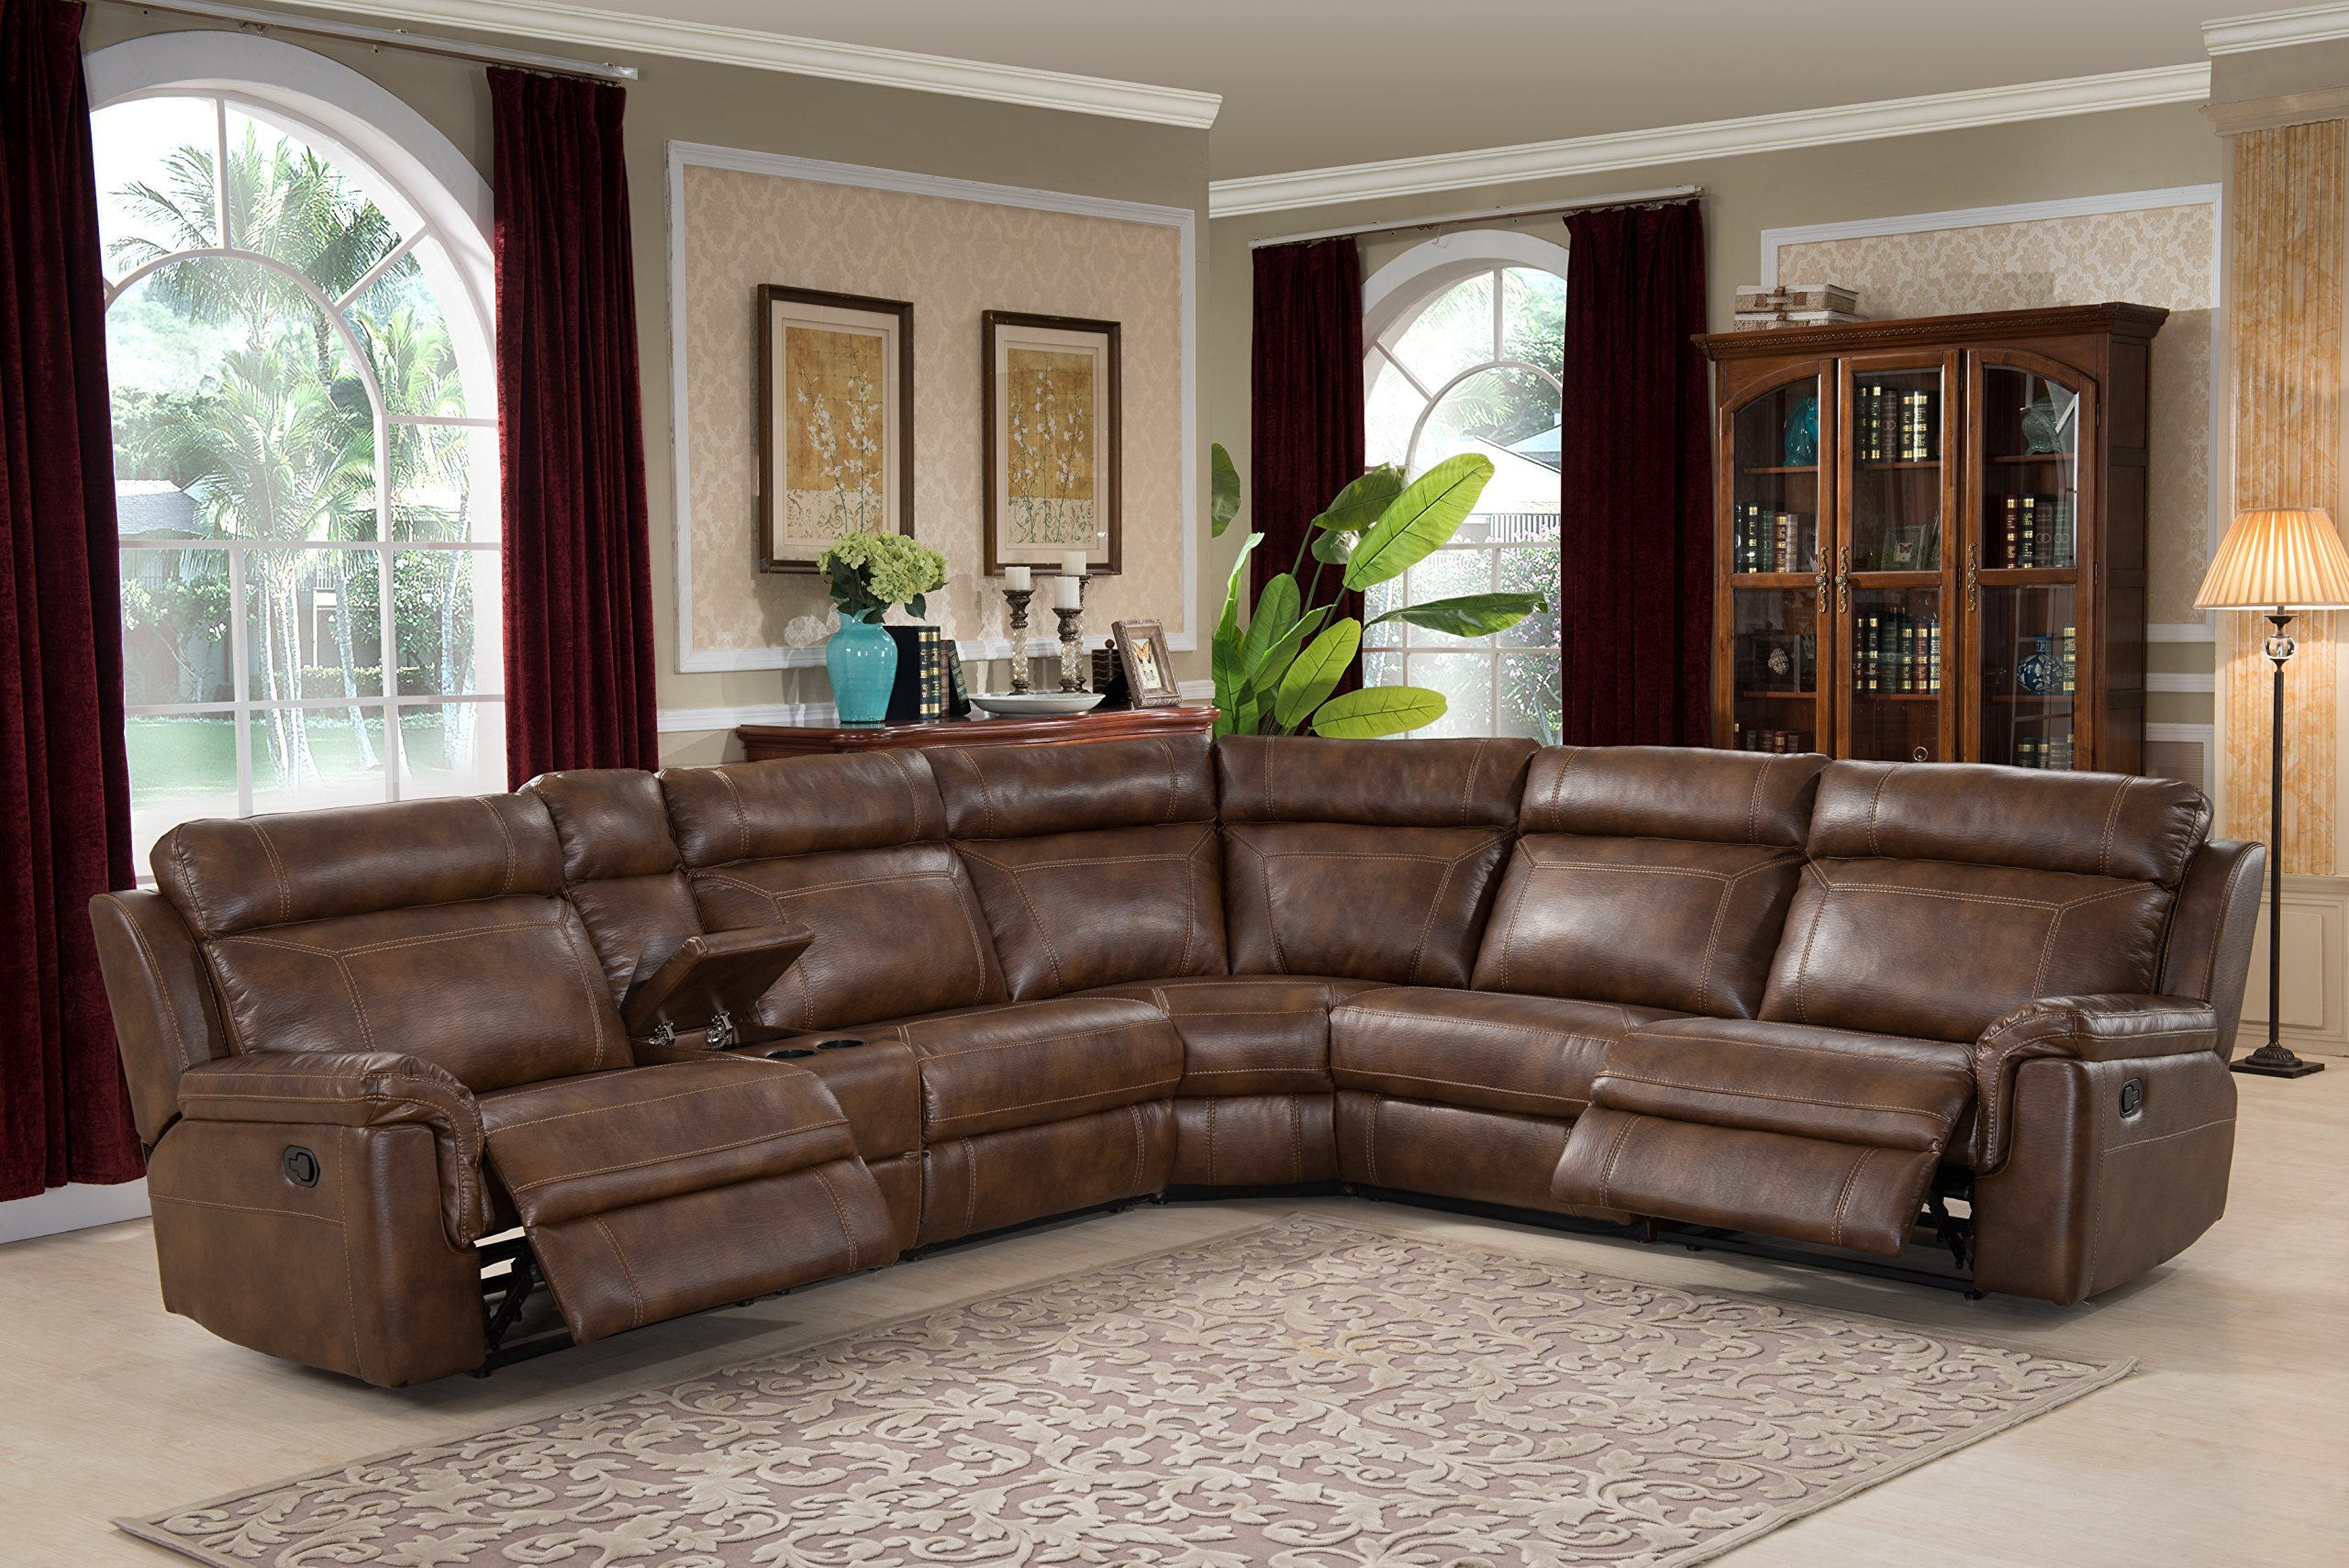 Christies Home Living 6-Piece Reclining Living Room Sectional with 3 Recliners, Clark Brown by Christies Home Living